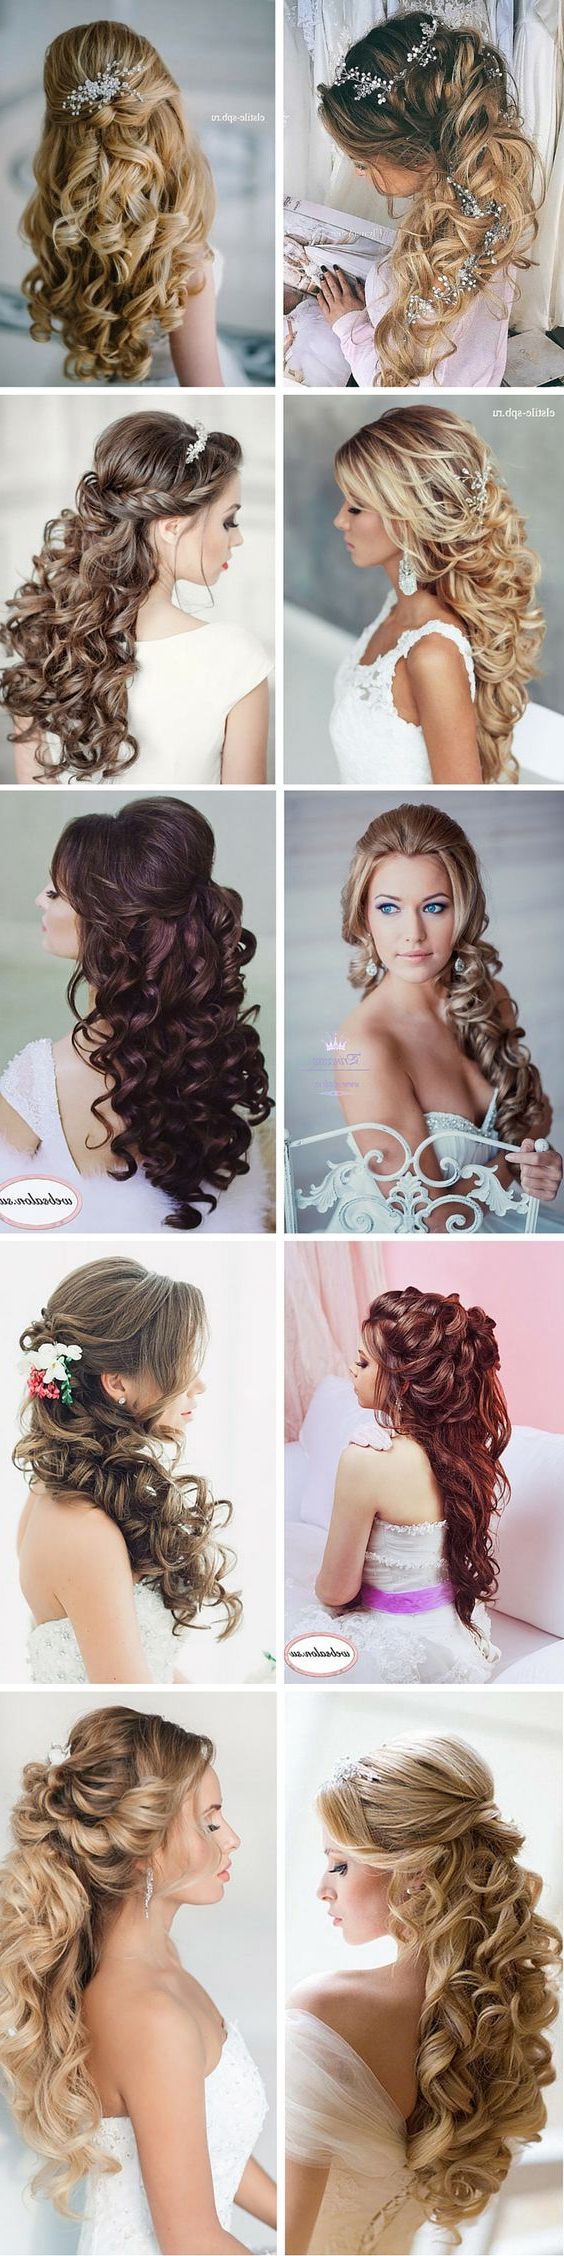 100+ romantic long wedding hairstyles 2018 - curls, half up, updos